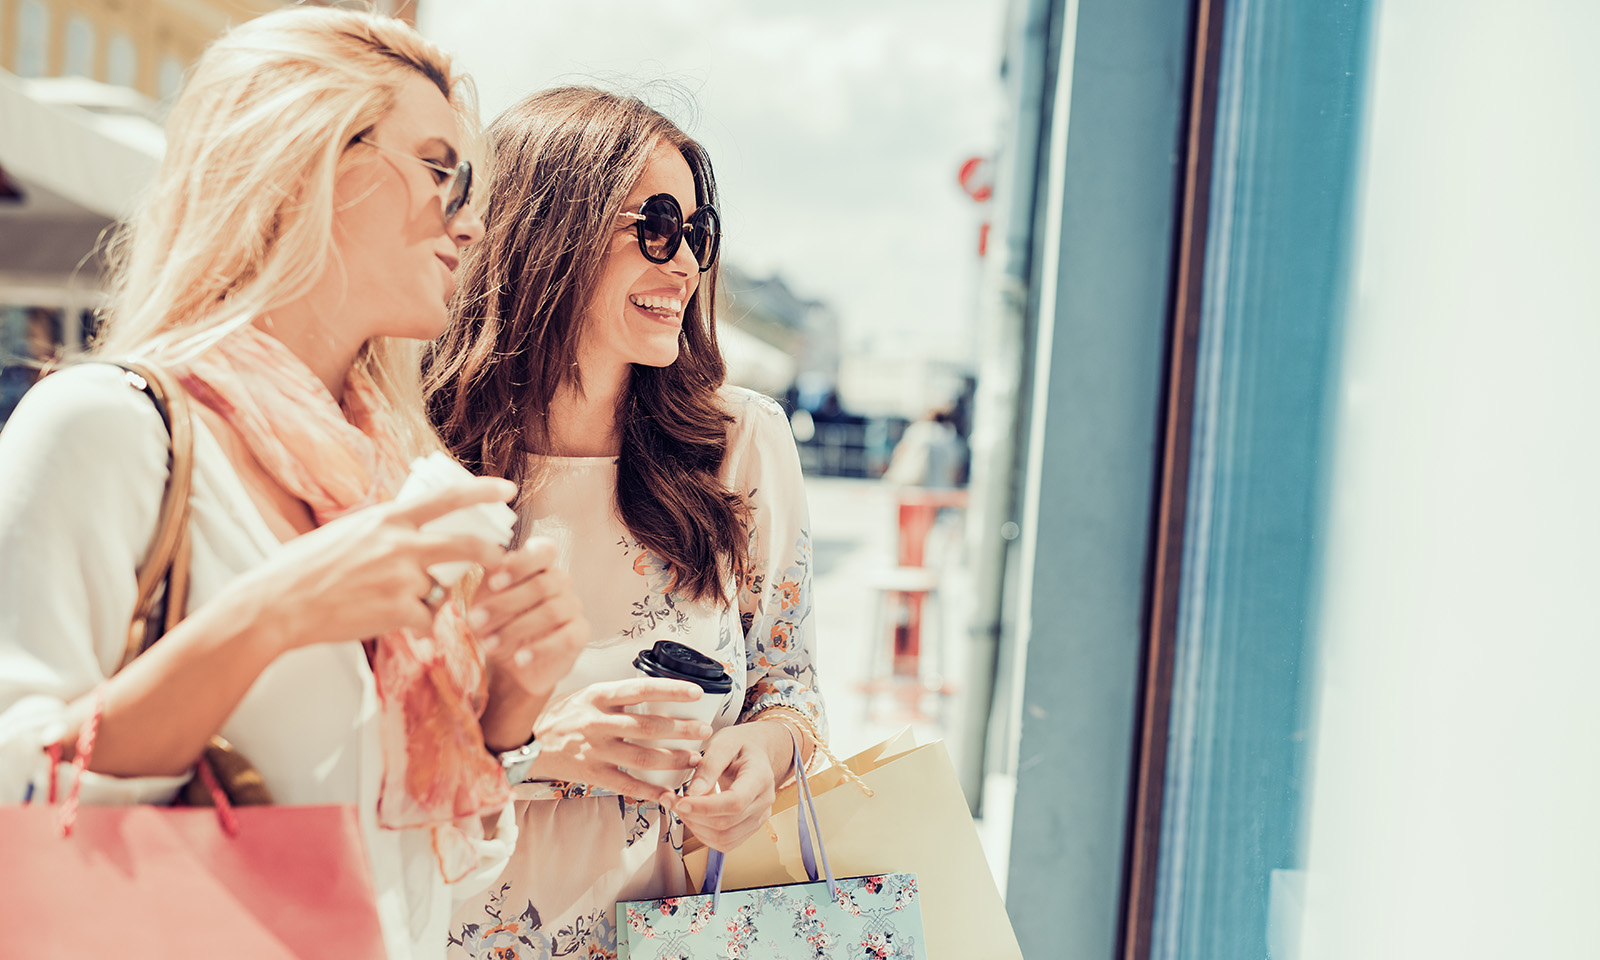 ways-to-get-motivated-friends-out-together-shopping-happy